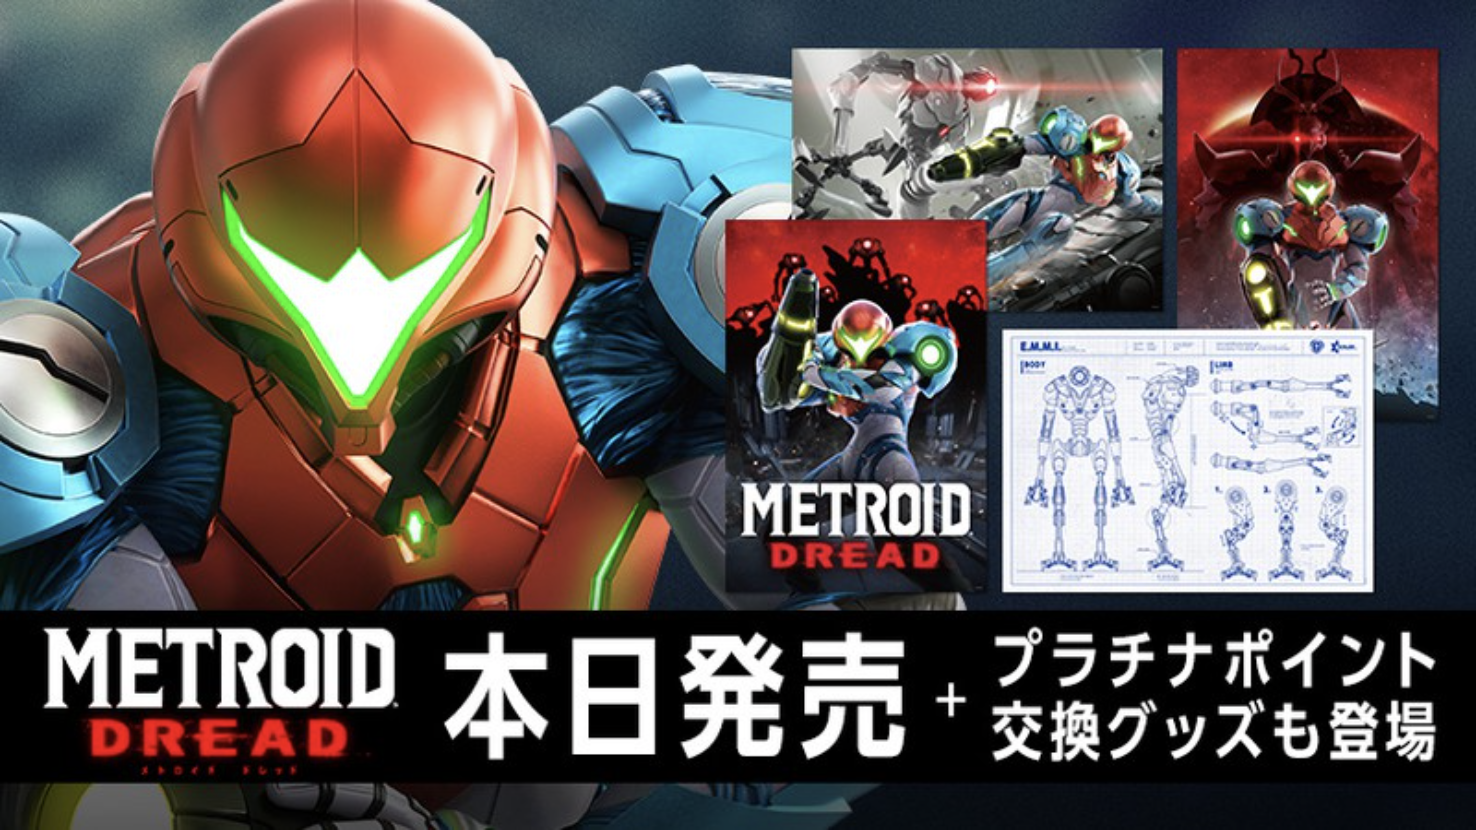 Metroid Dread Posters Up on My Nintendo Japan for Platinum Points